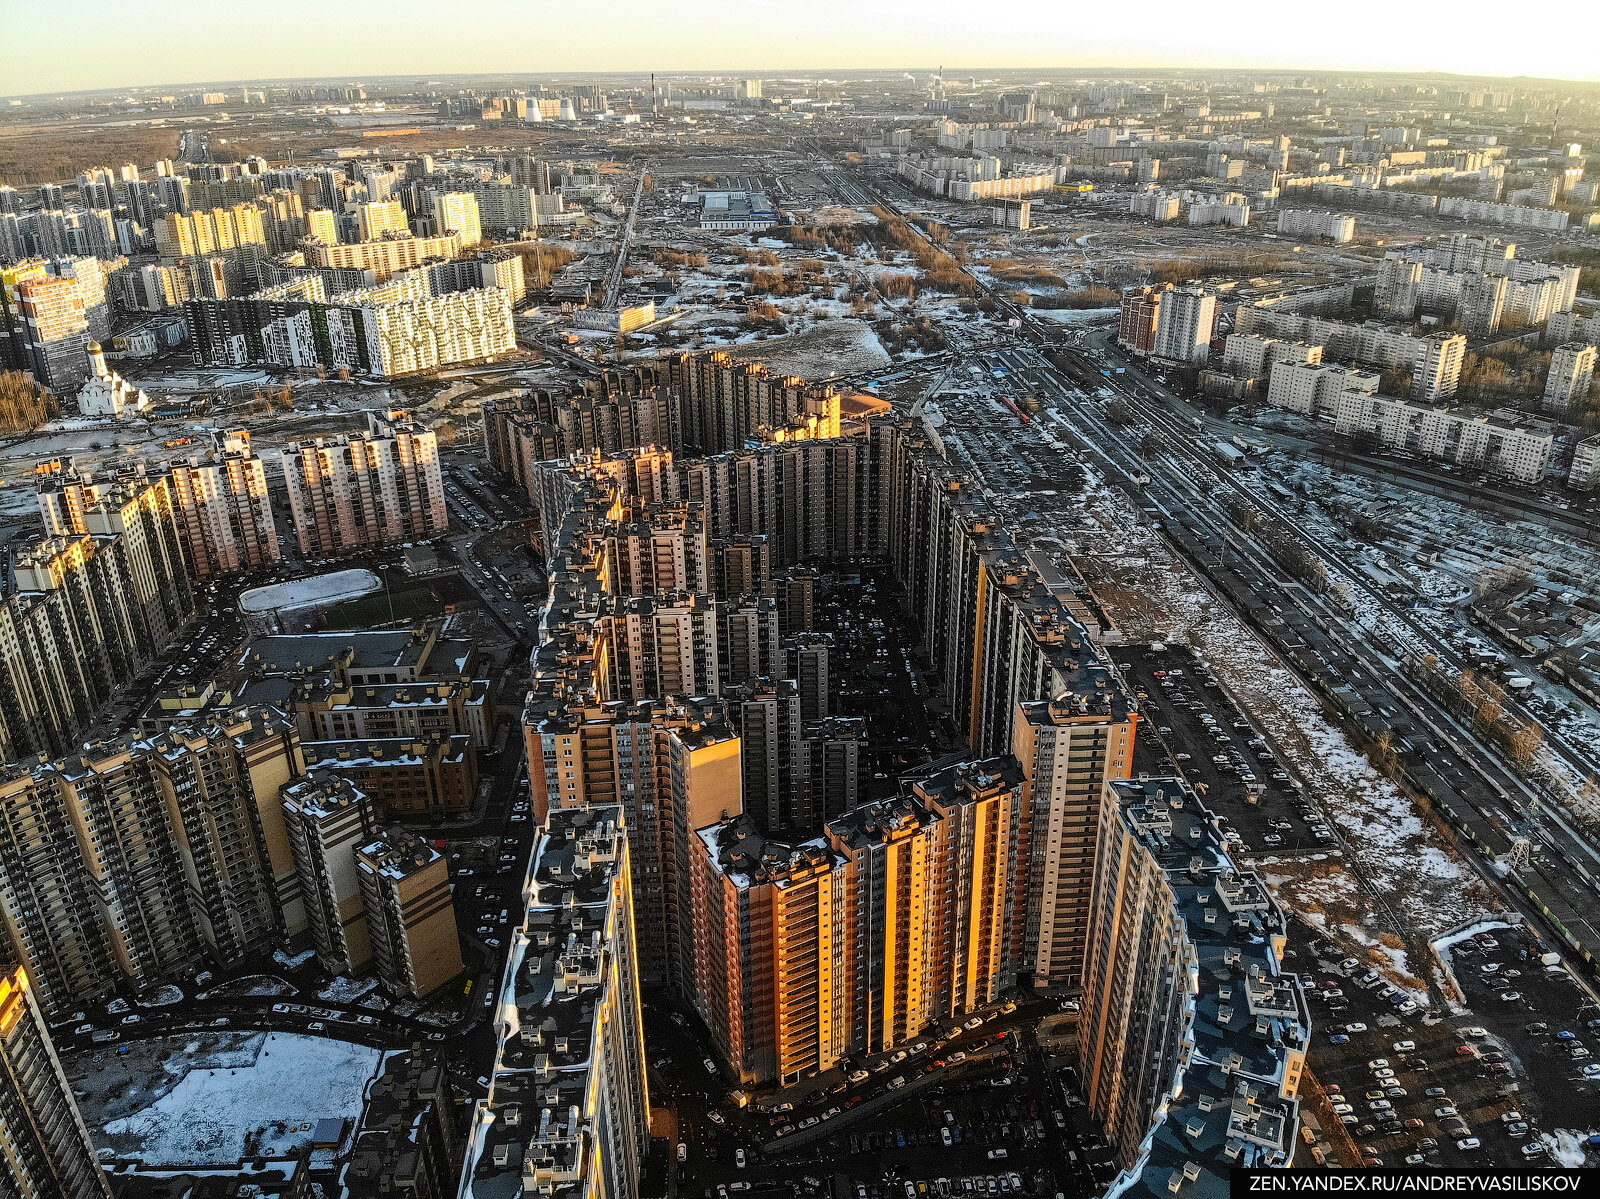 35 Entrances, 3708 Apartments: Welcome to the Main City-House of All Russia!